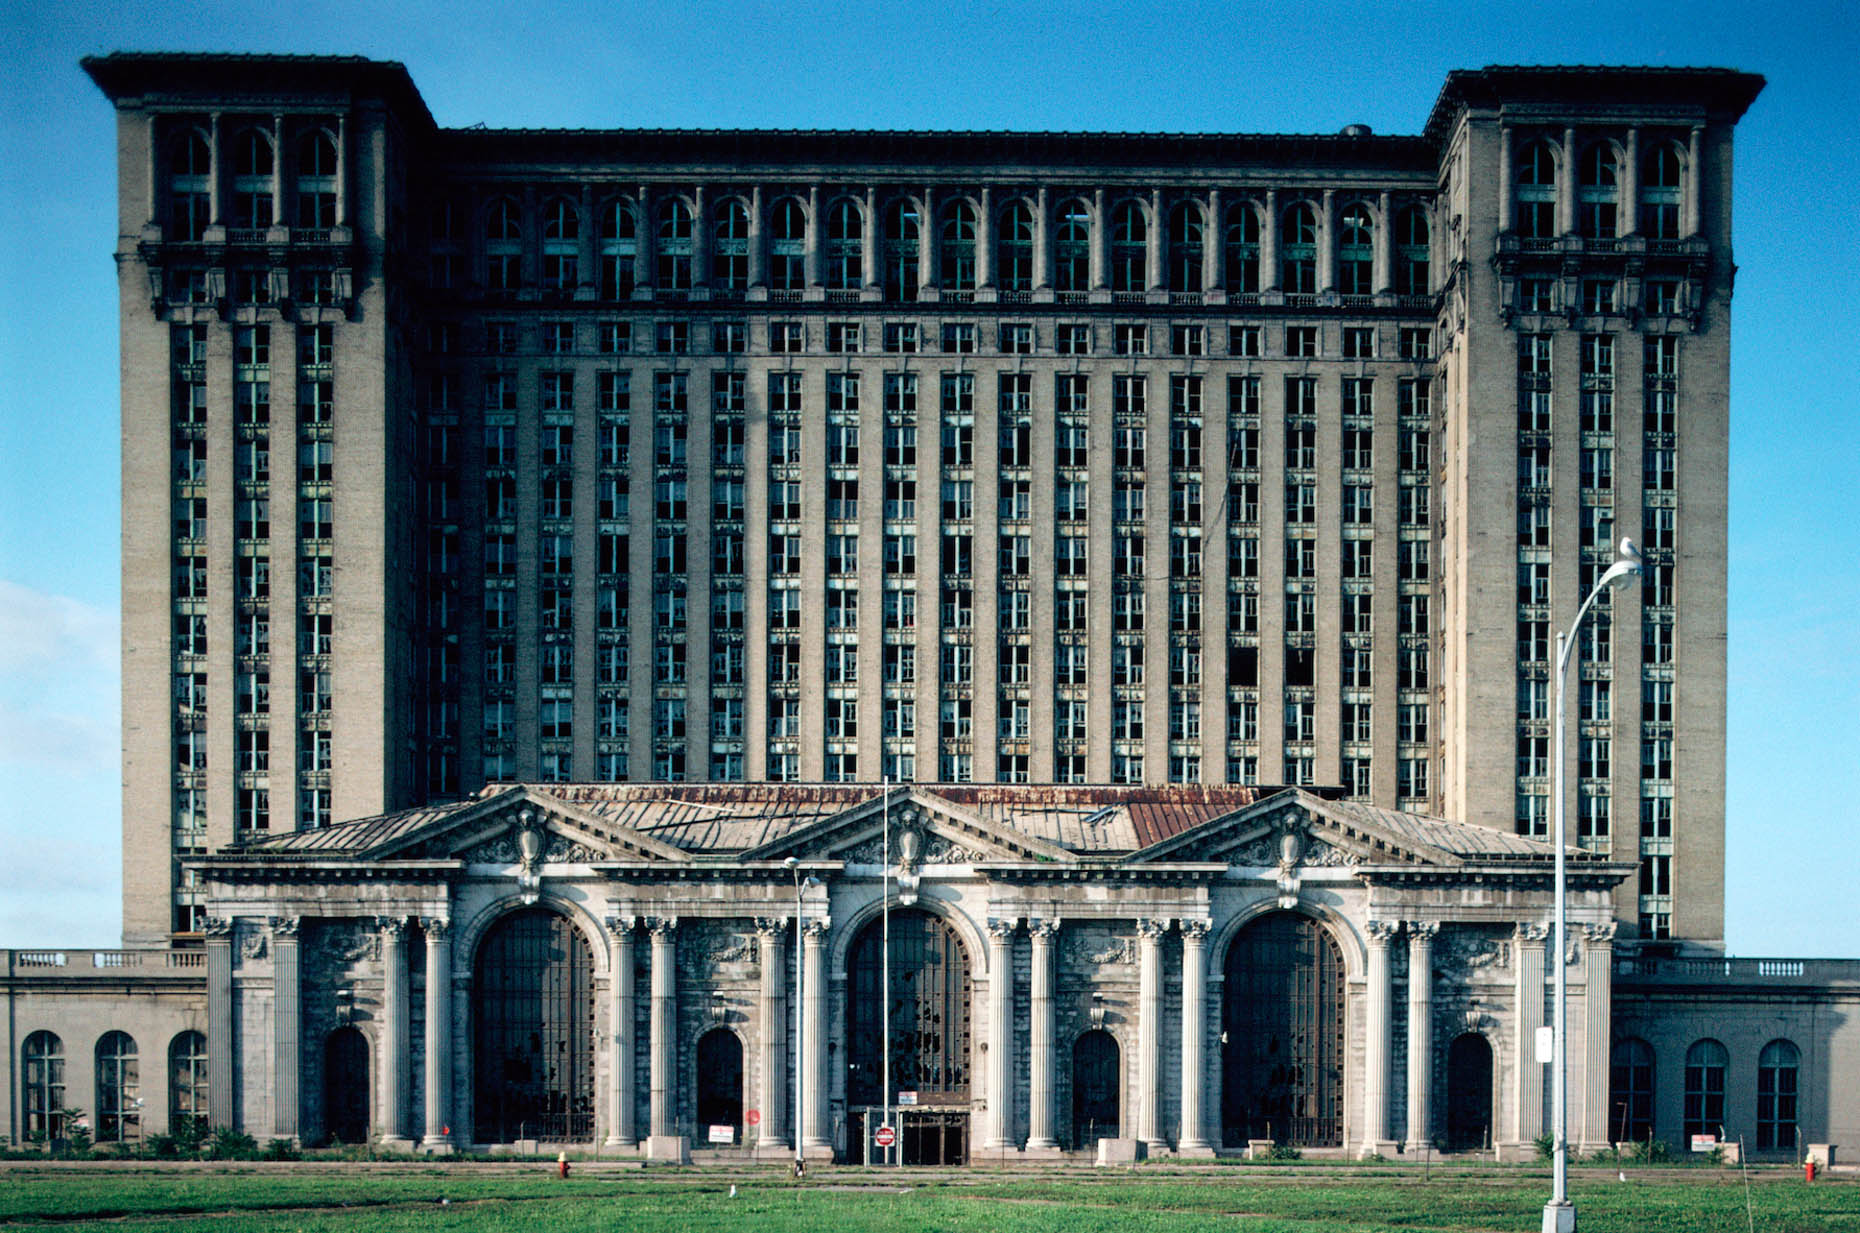 03_Former Michigan Central Railroad Station, Detroit, 2000_-DUP4.jpg